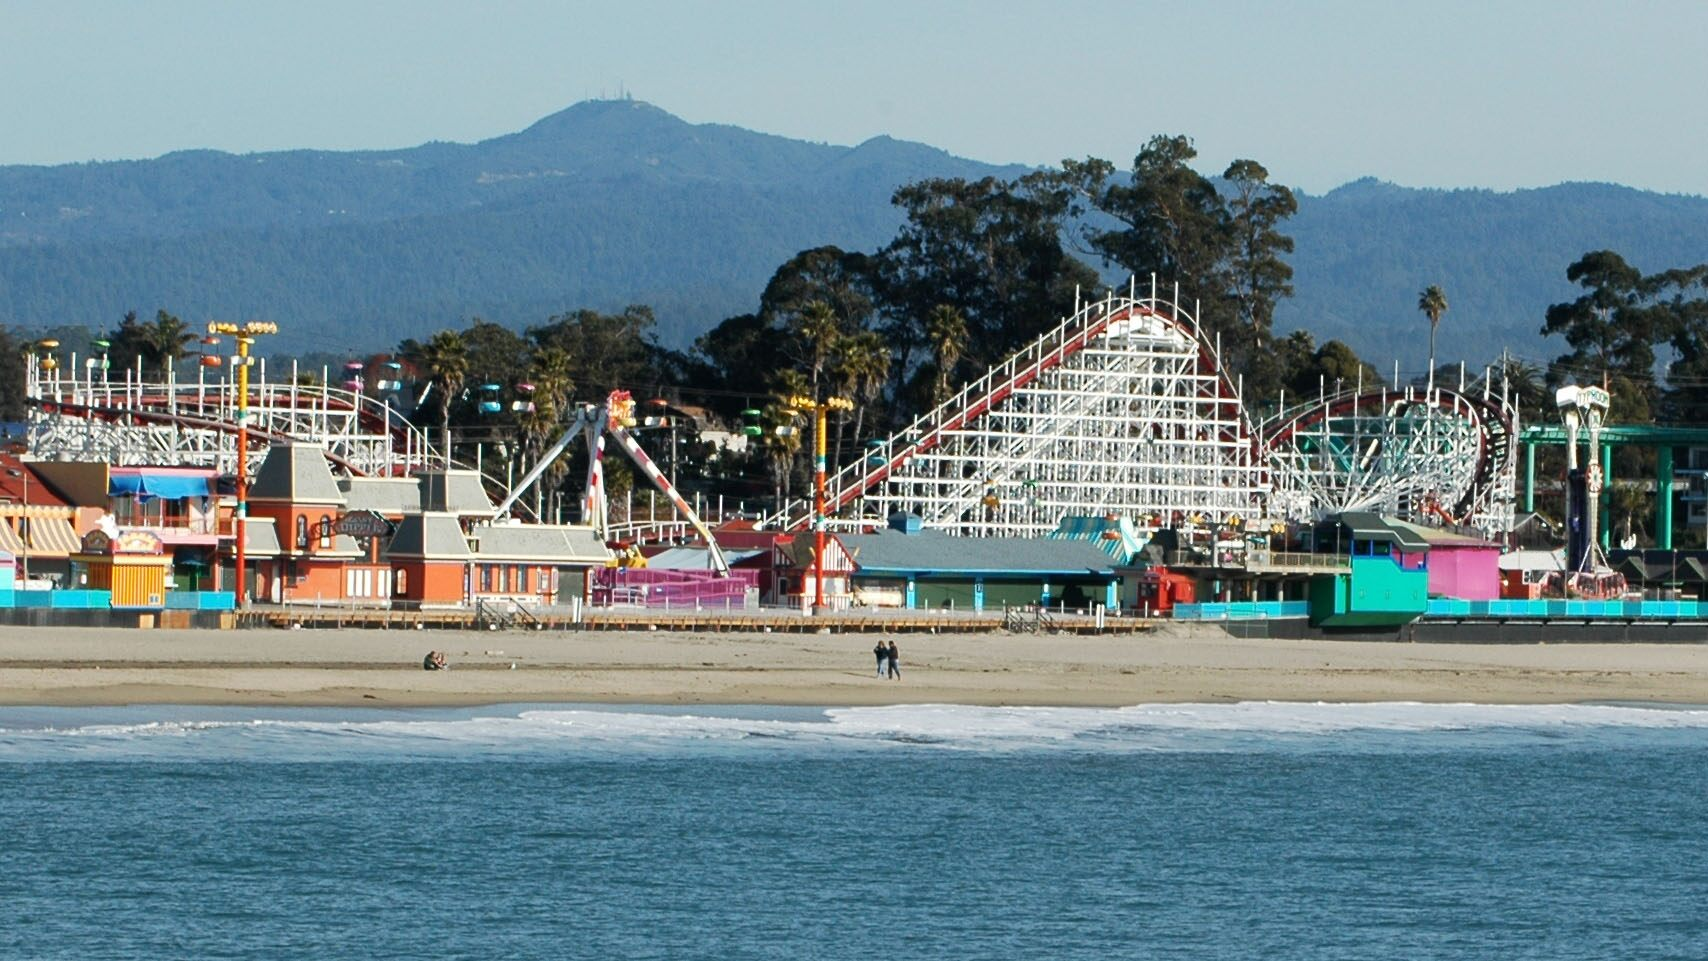 Coronavirus concerns close California boardwalk, state's first amusement park to reopen, after one weekend